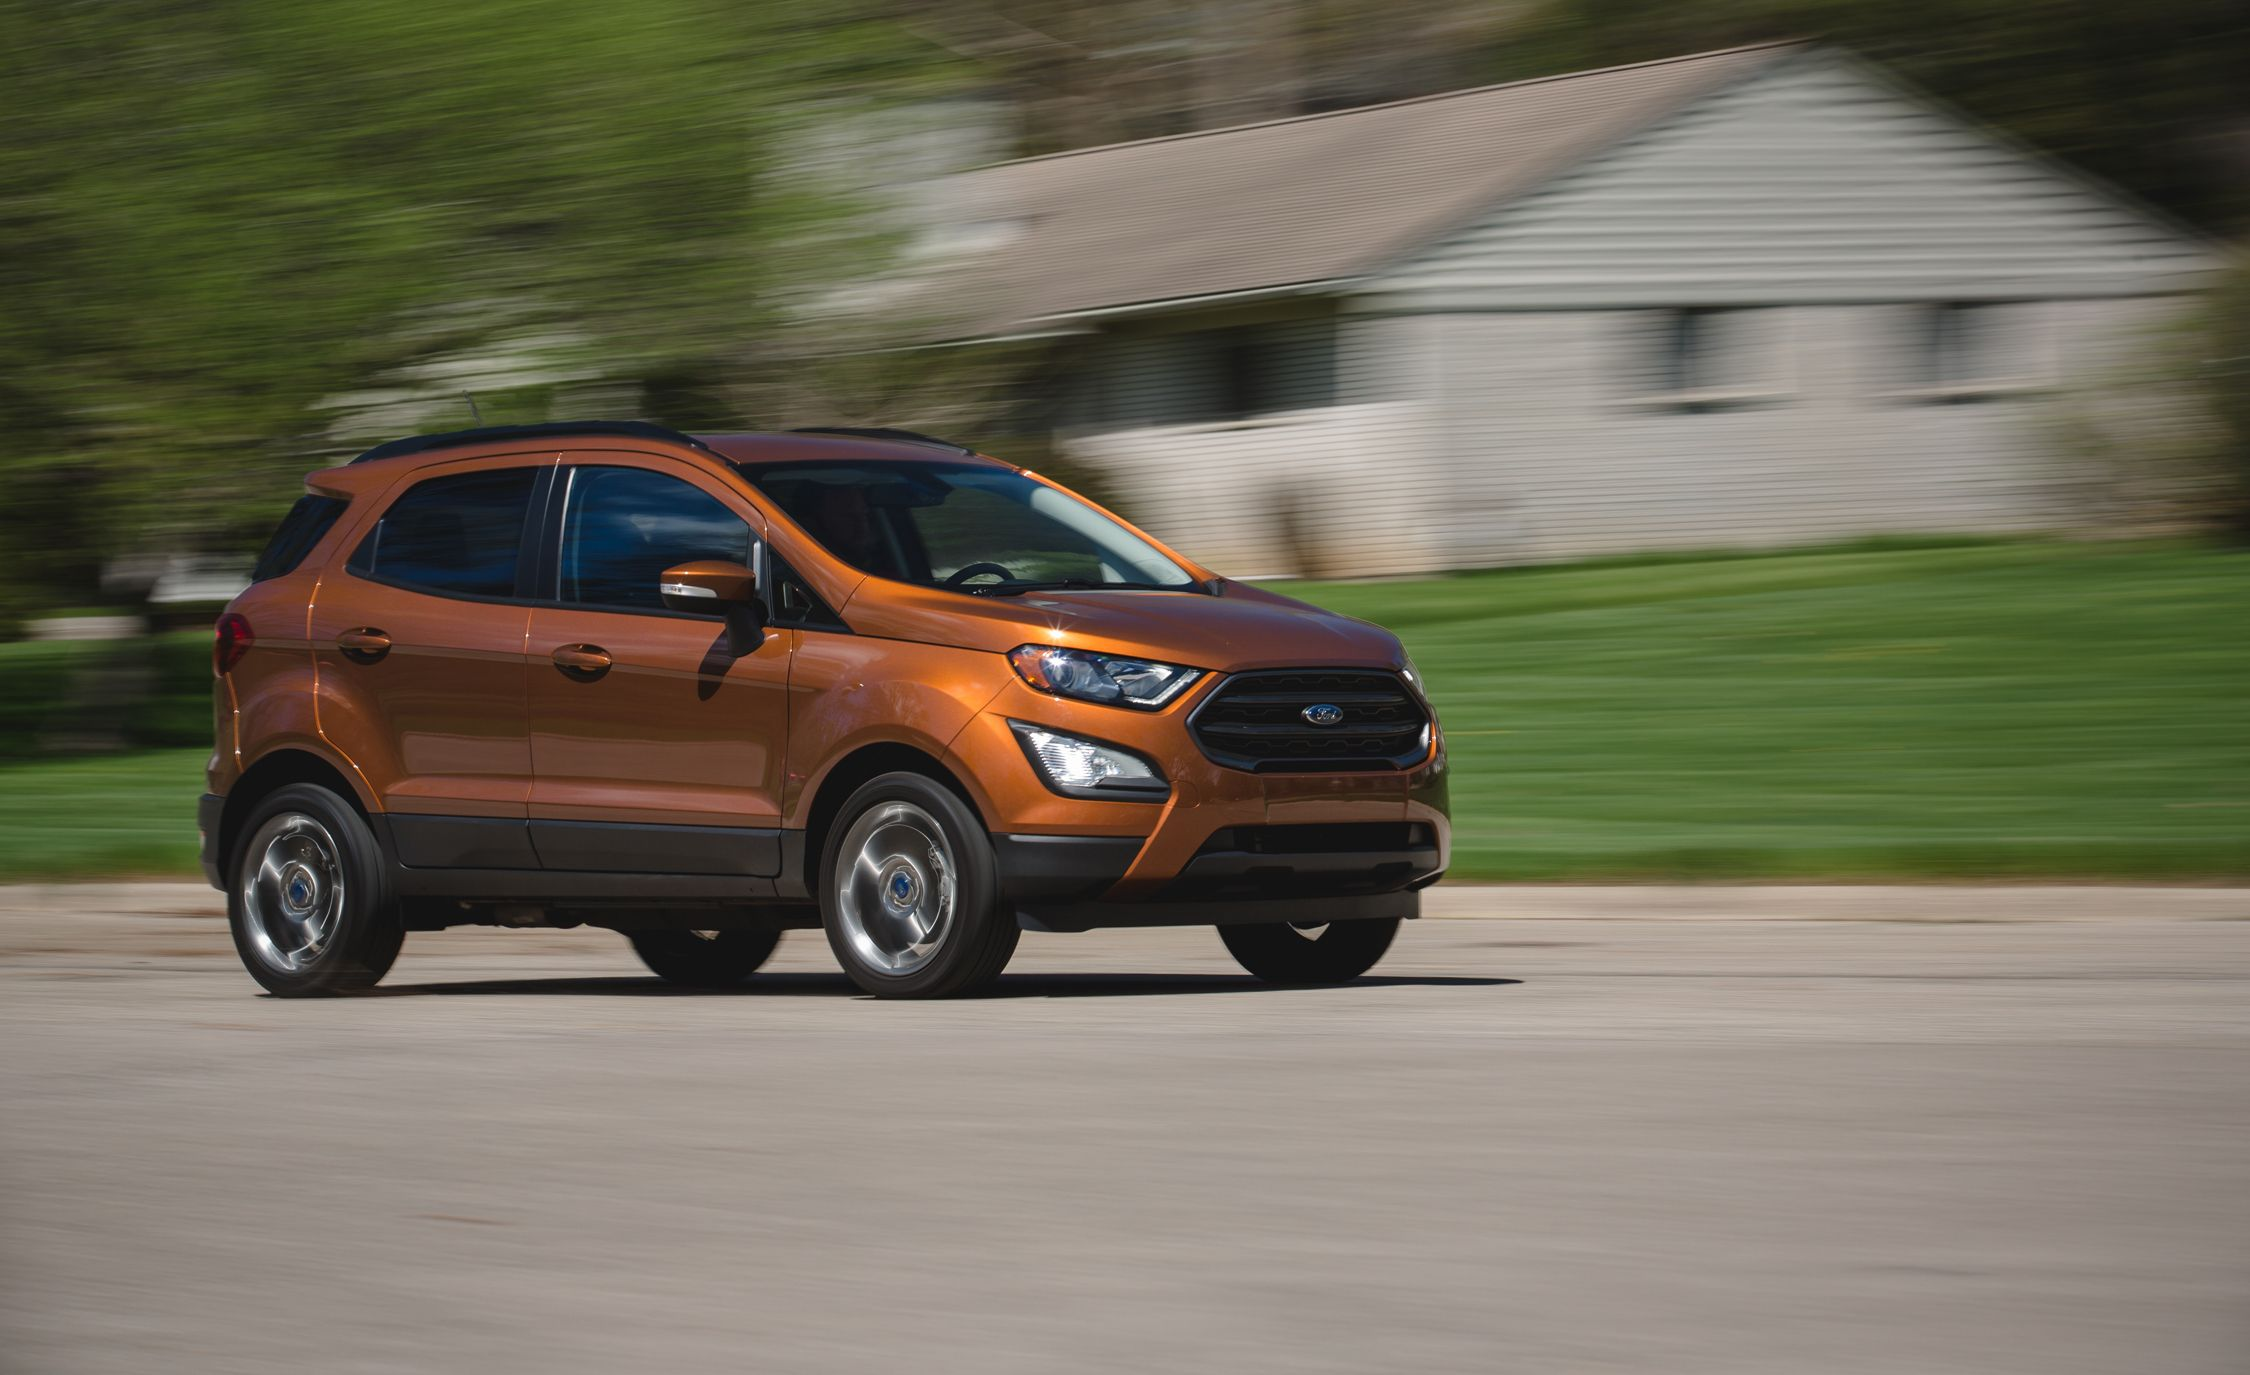 2018 Ford Lightning >> 2019 Ford EcoSport Reviews | Ford EcoSport Price, Photos, and Specs | Car and Driver